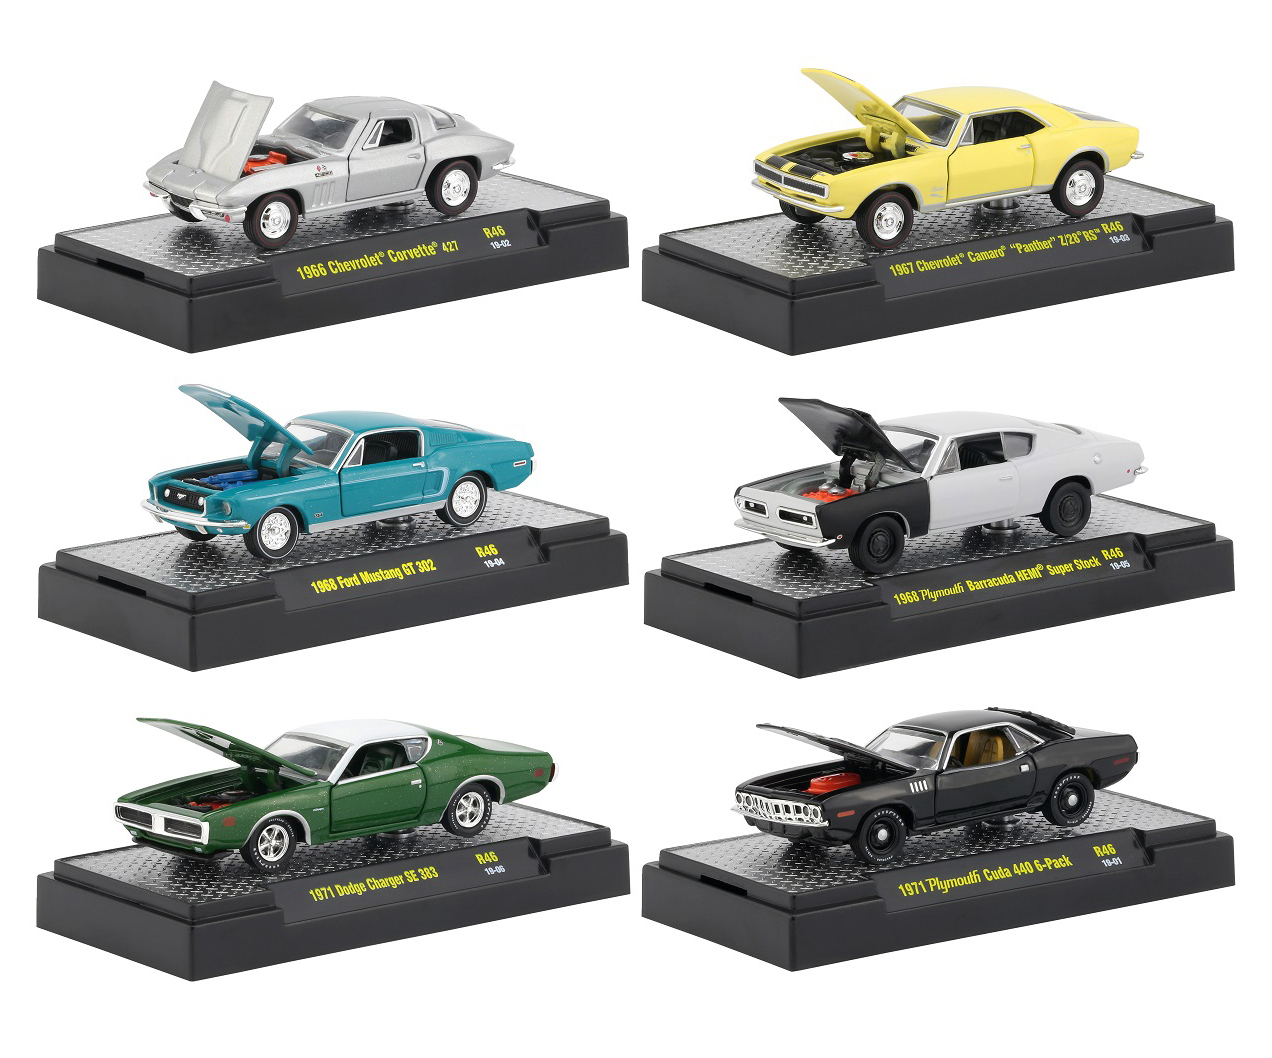 Detroit Muscle Release 46 6 Cars Set IN DISPLAY CASES 1/64 Diecast Model Cars by M2 Machines